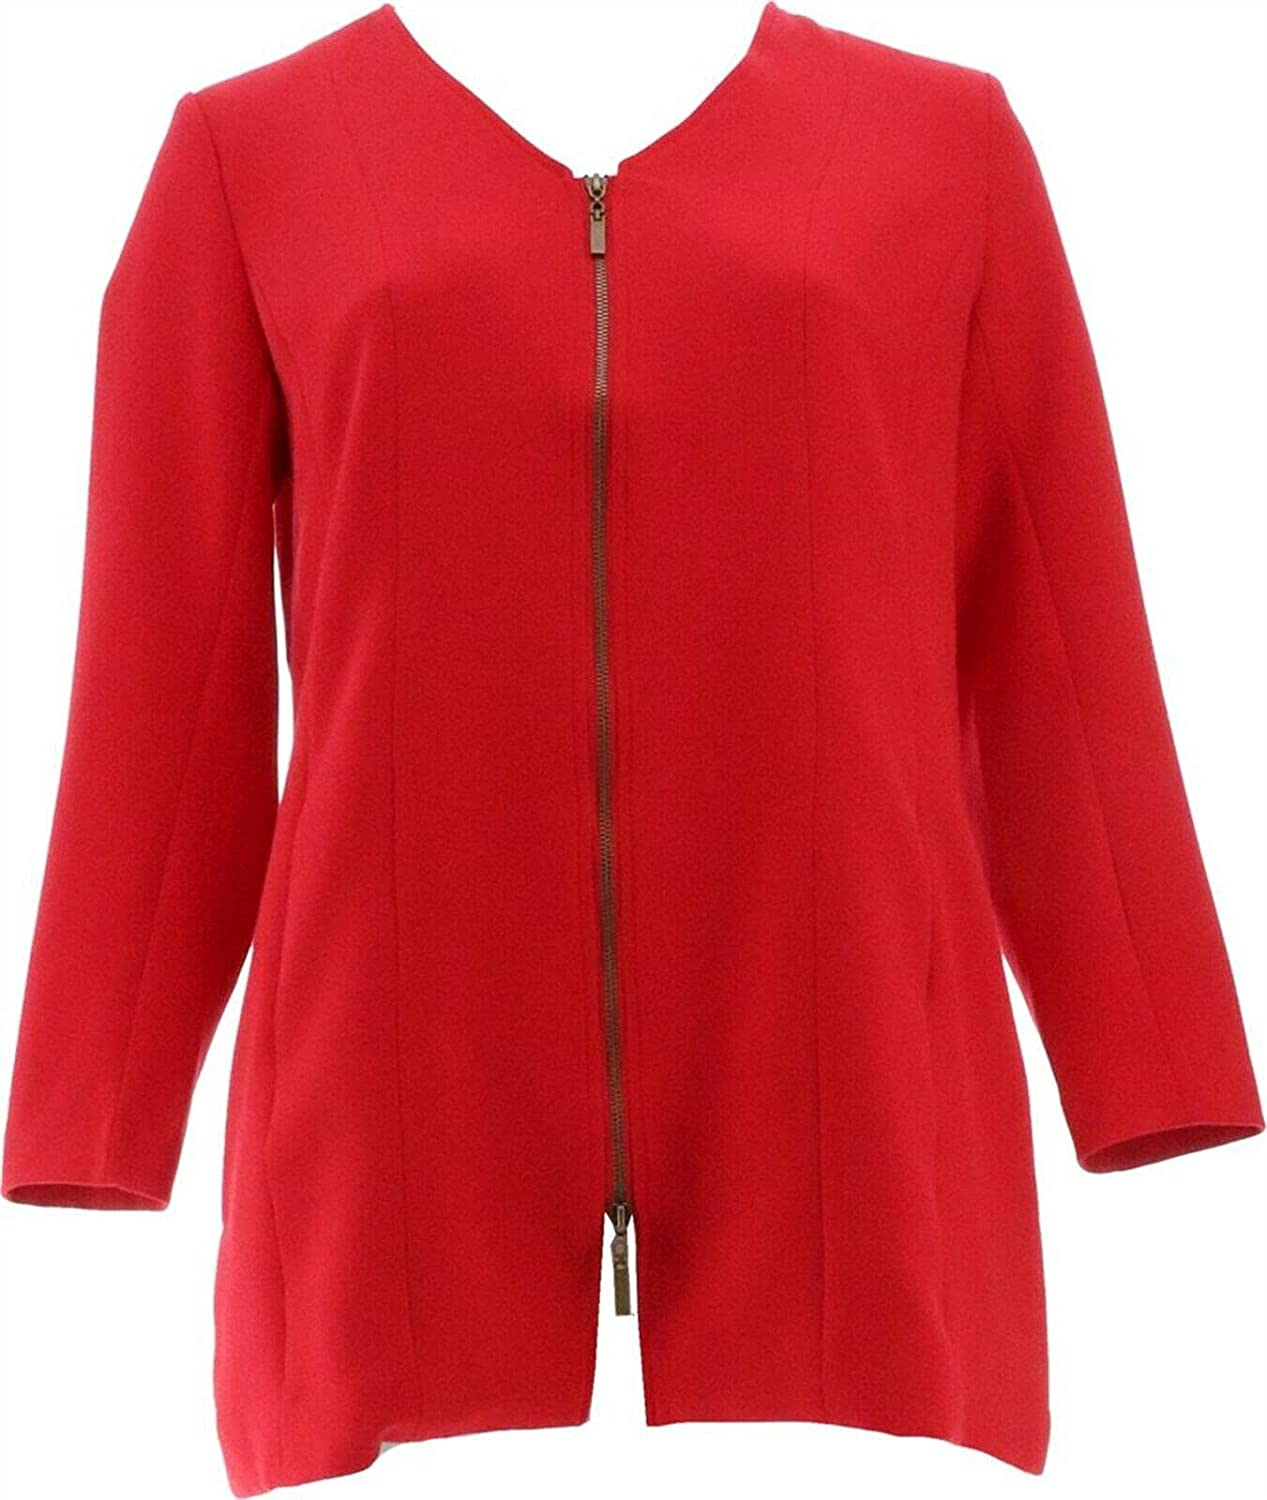 Linea Louis Dell'Olio V-Neck Low price Jacket A389959 New arrival Zip-Front